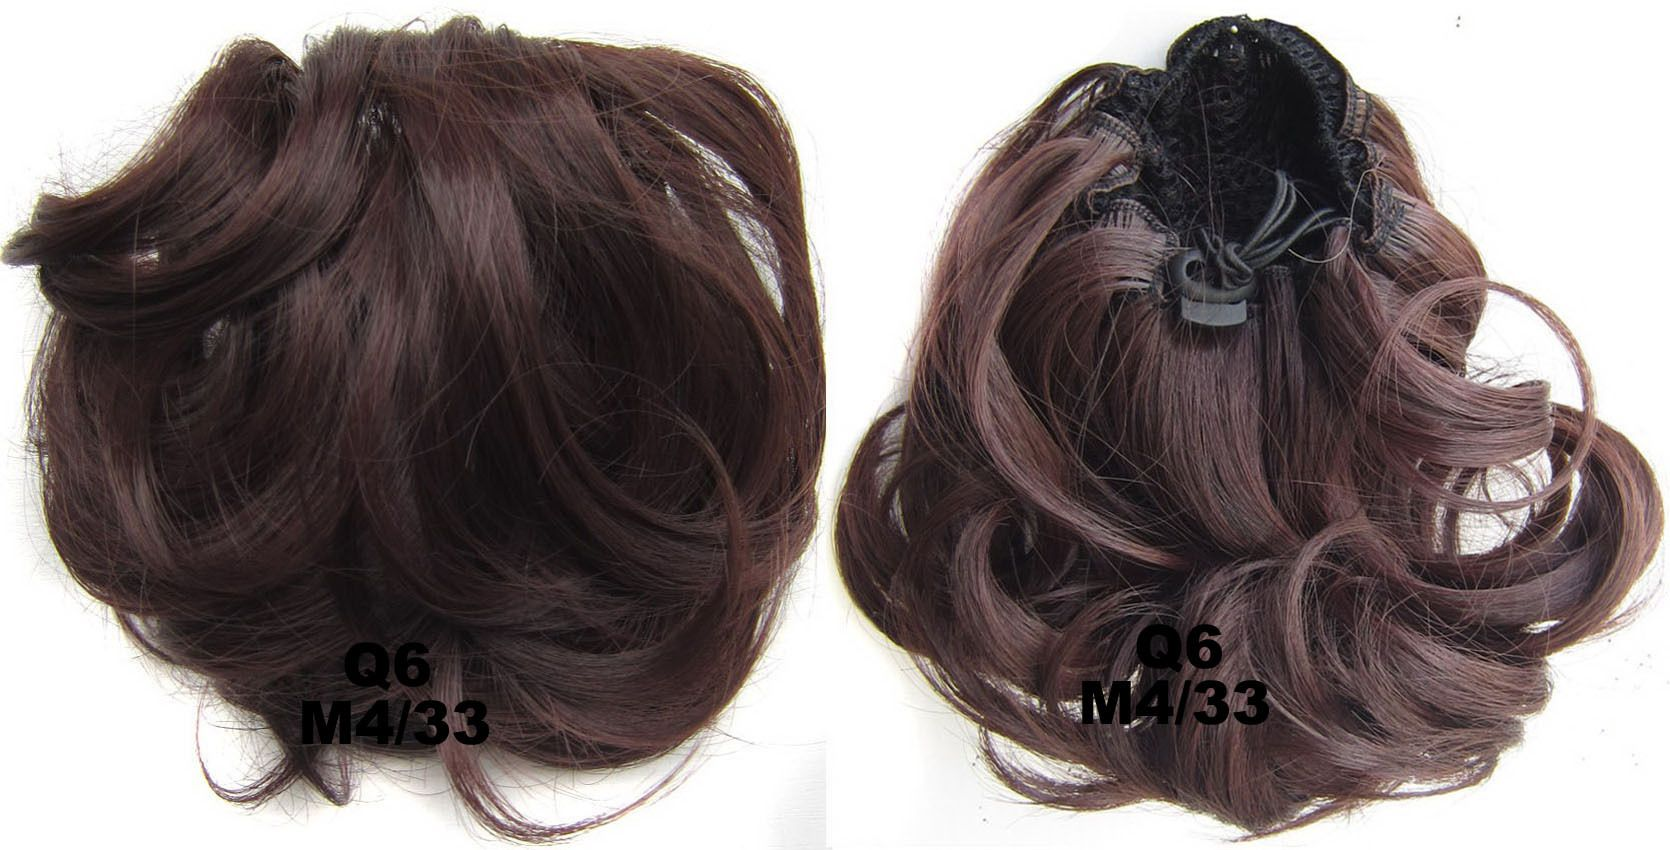 Ladies fashional and popular curly and short hair buns drawstring ladies fashional and popular curly and short hair buns drawstring synthetic hair extension bride scrunchies m433 pmusecretfo Gallery